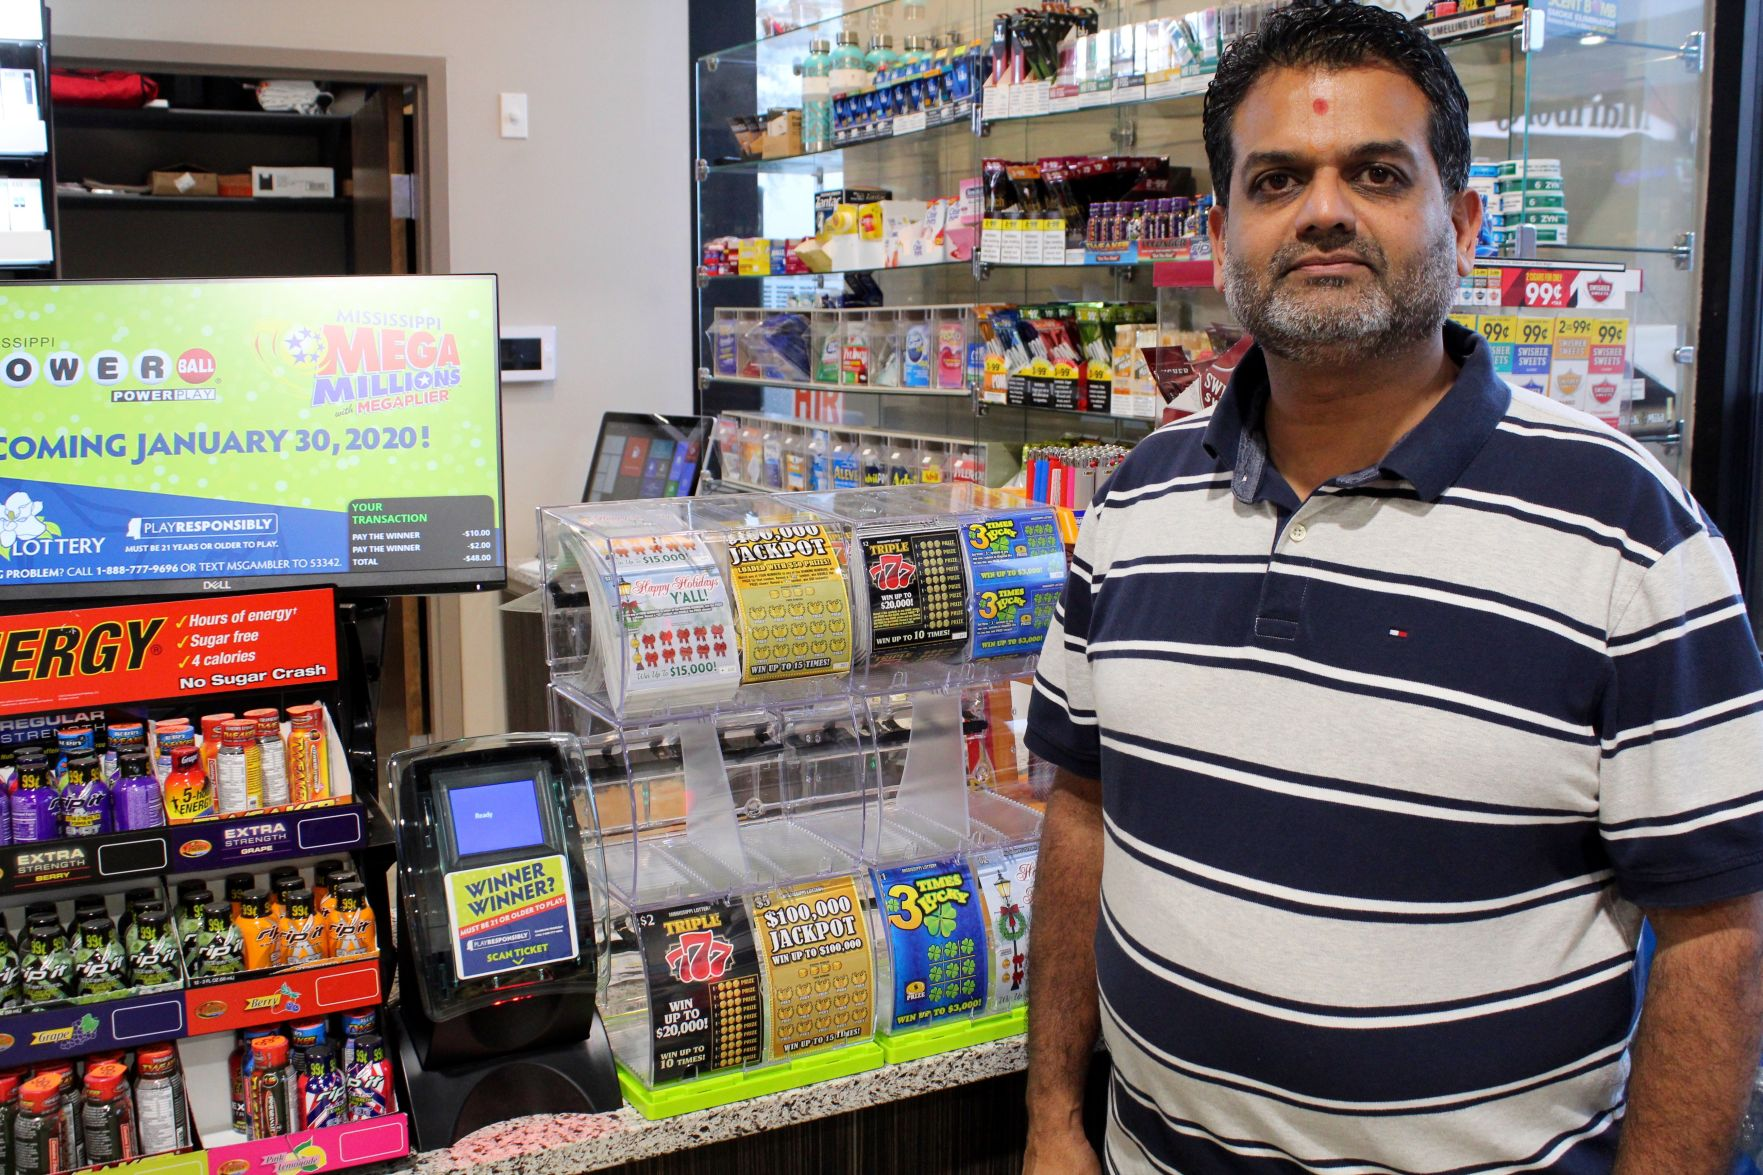 do convenience stores make money off lottery